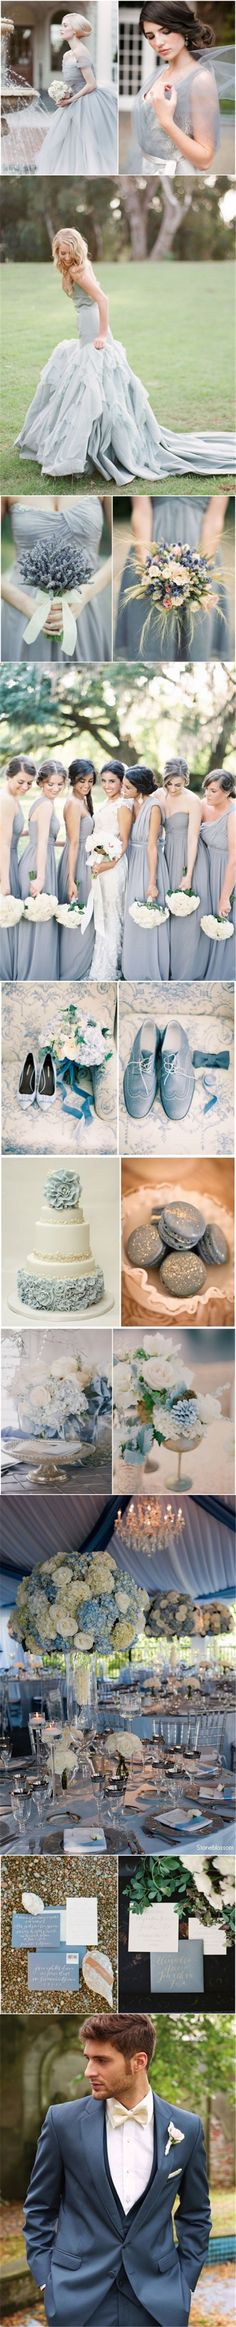 2015 wedding color i